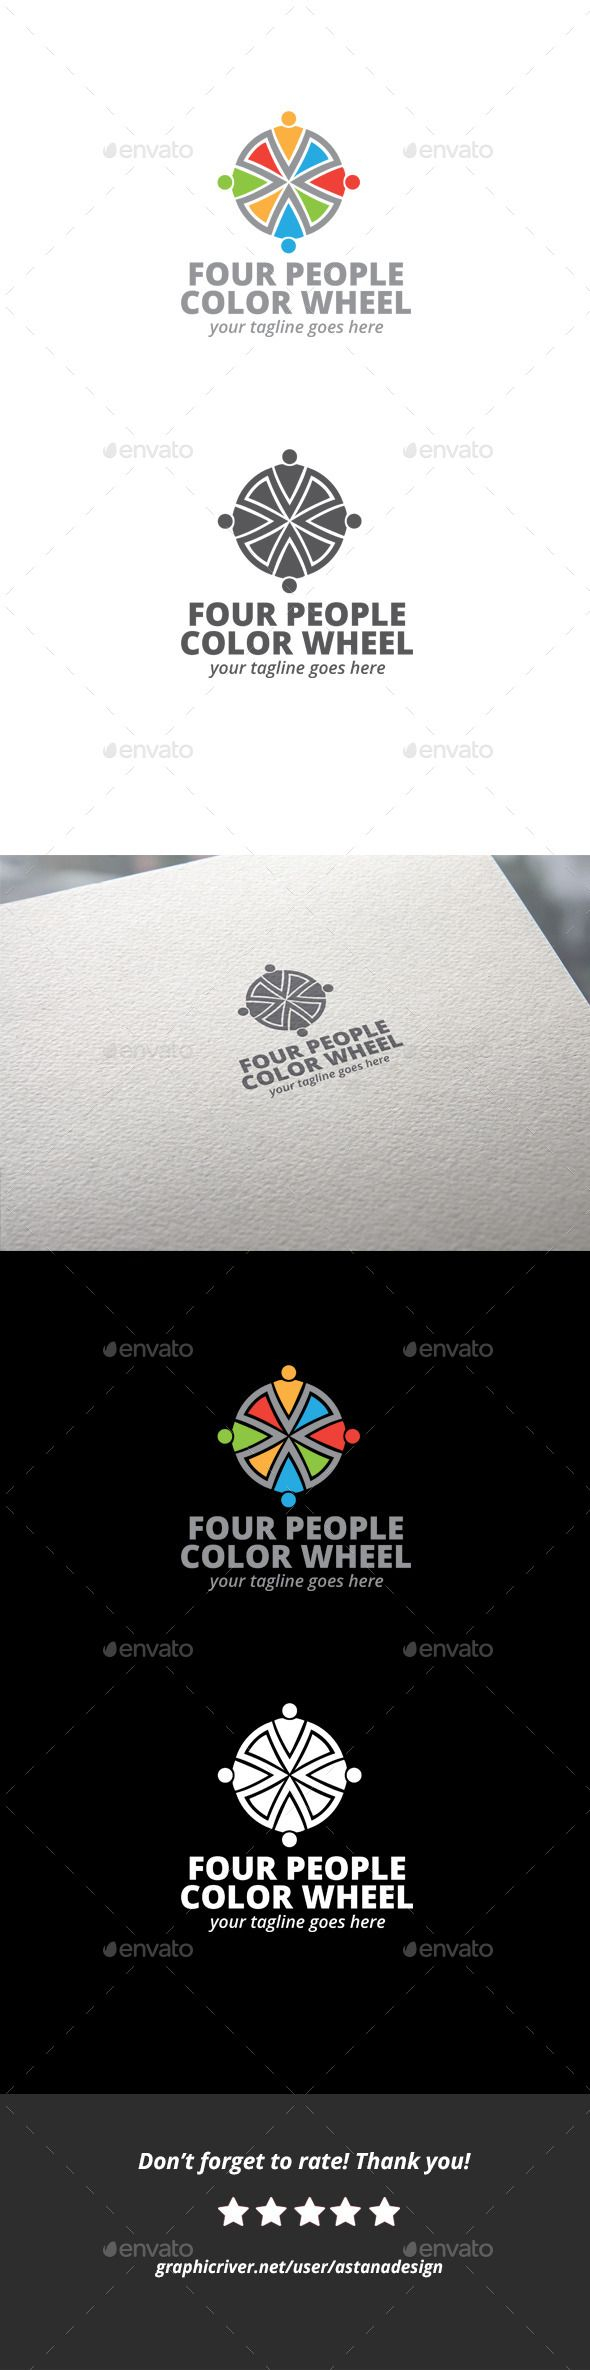 Four People Color Wheel  - Logo Design Template Vector #logotype Download it here: http://graphicriver.net/item/four-people-color-wheel-logo/10730871?s_rank=998?ref=nexion